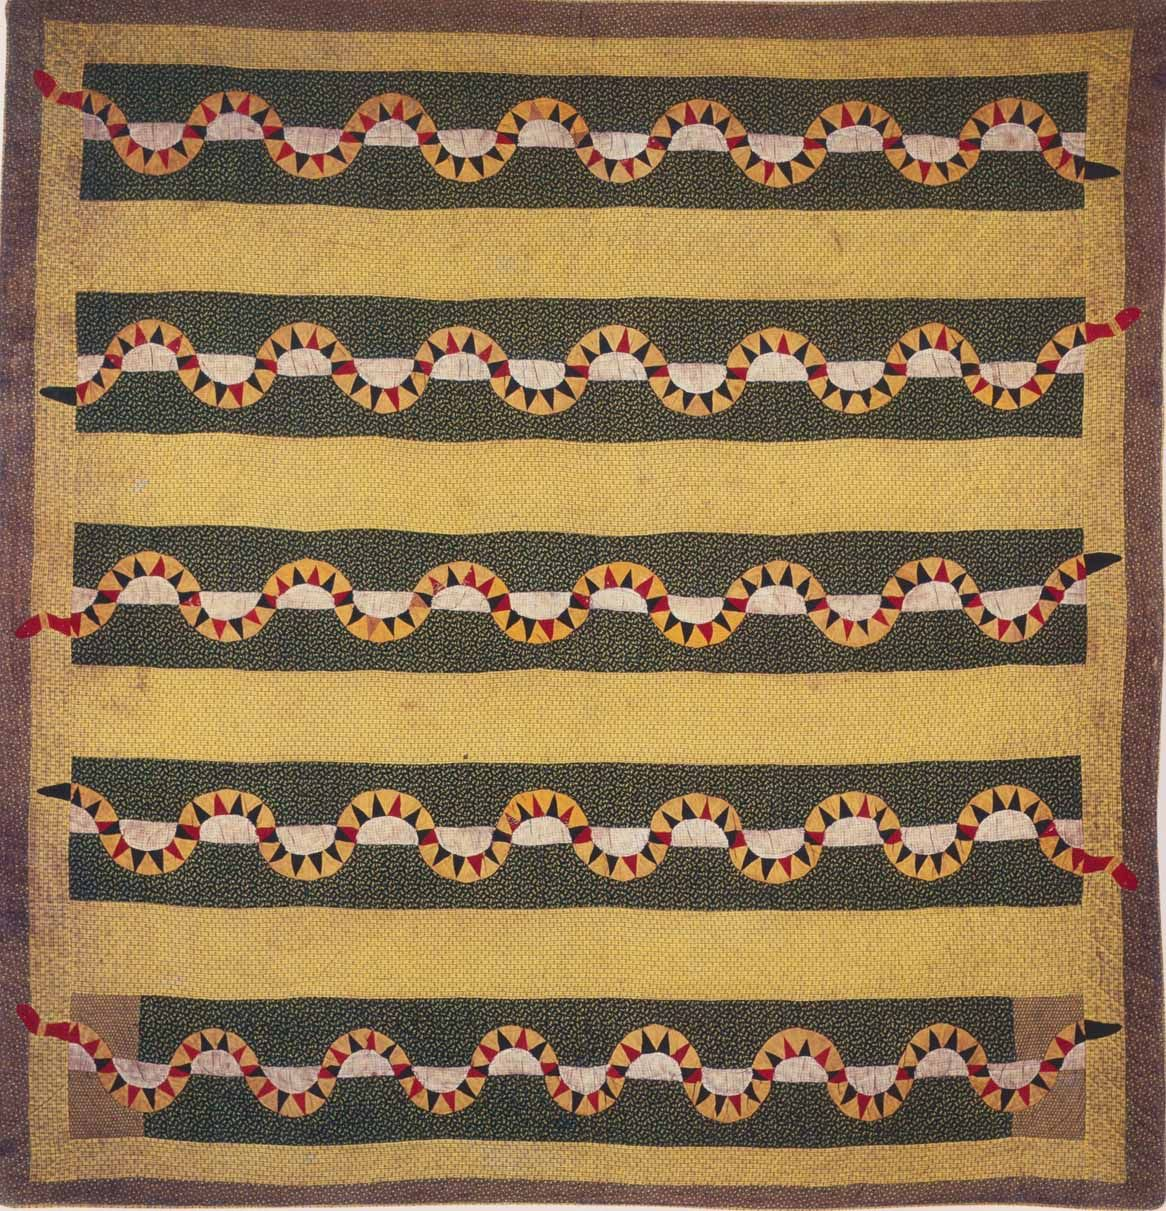 Snake Quilt C 1885 North Carolina Vintage Quilts